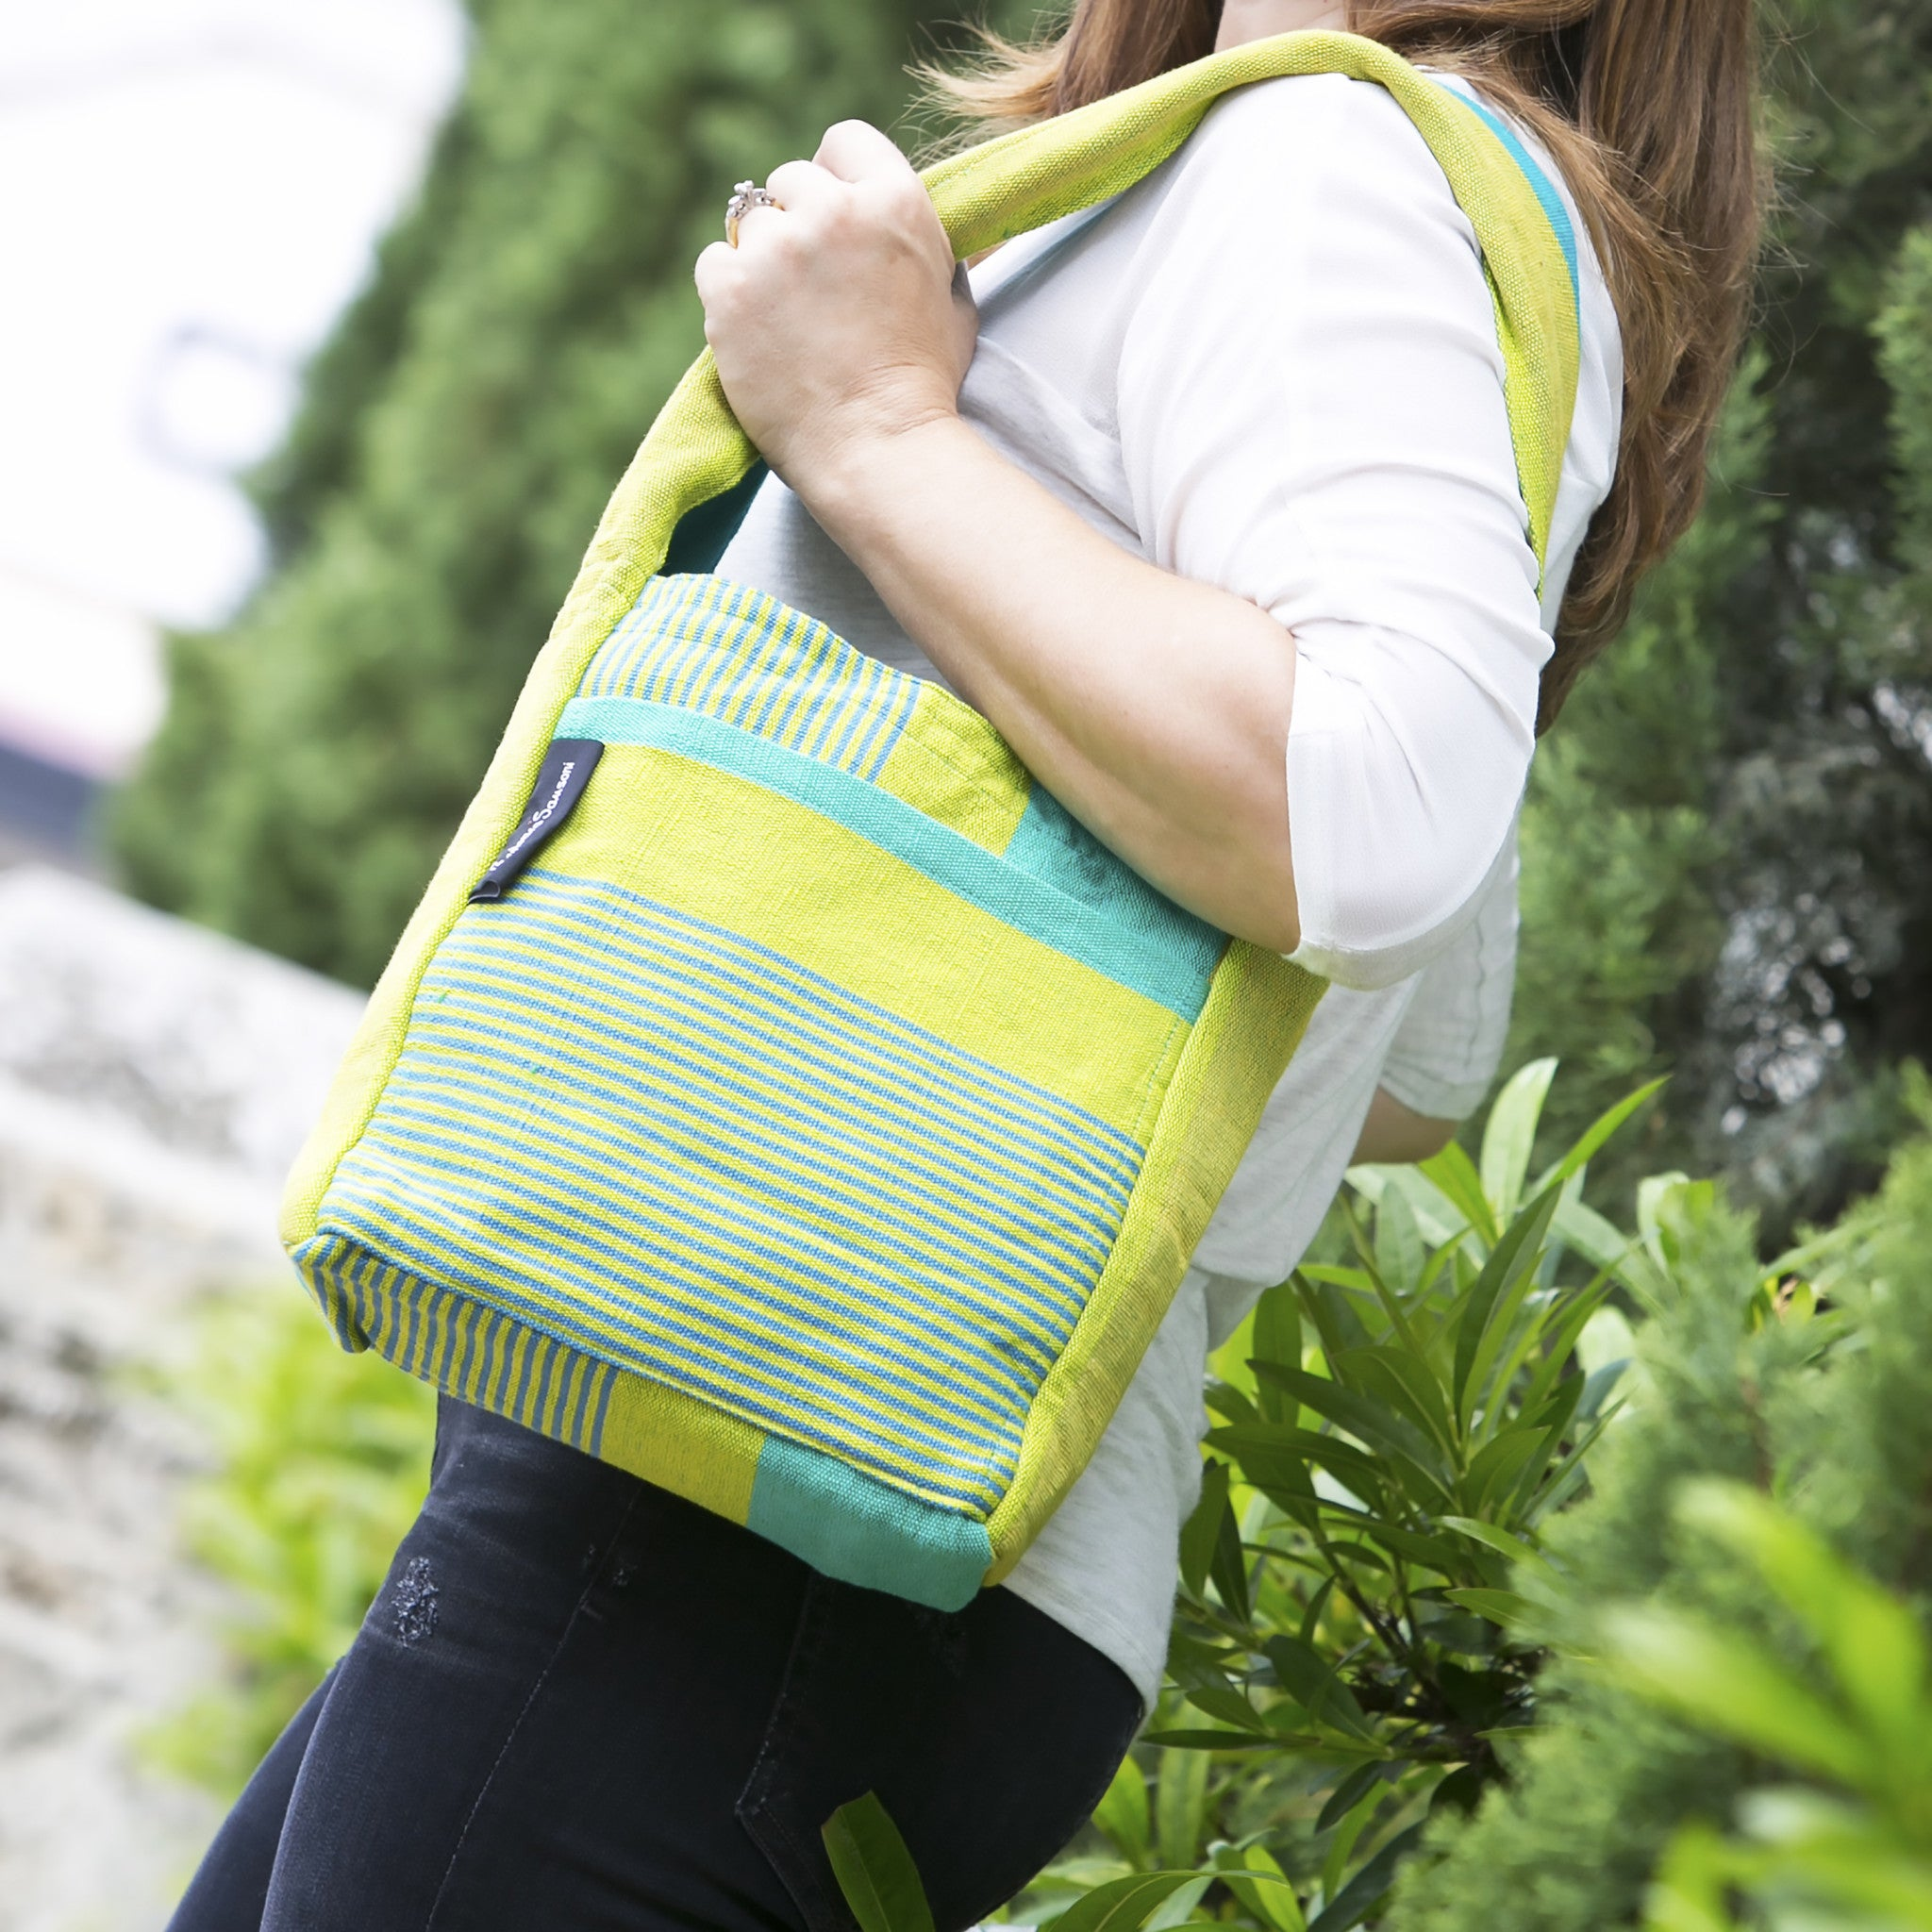 The Versatile Shoulder Bag - Great for a day of shopping! (Lemongrass fabric shown in small size)